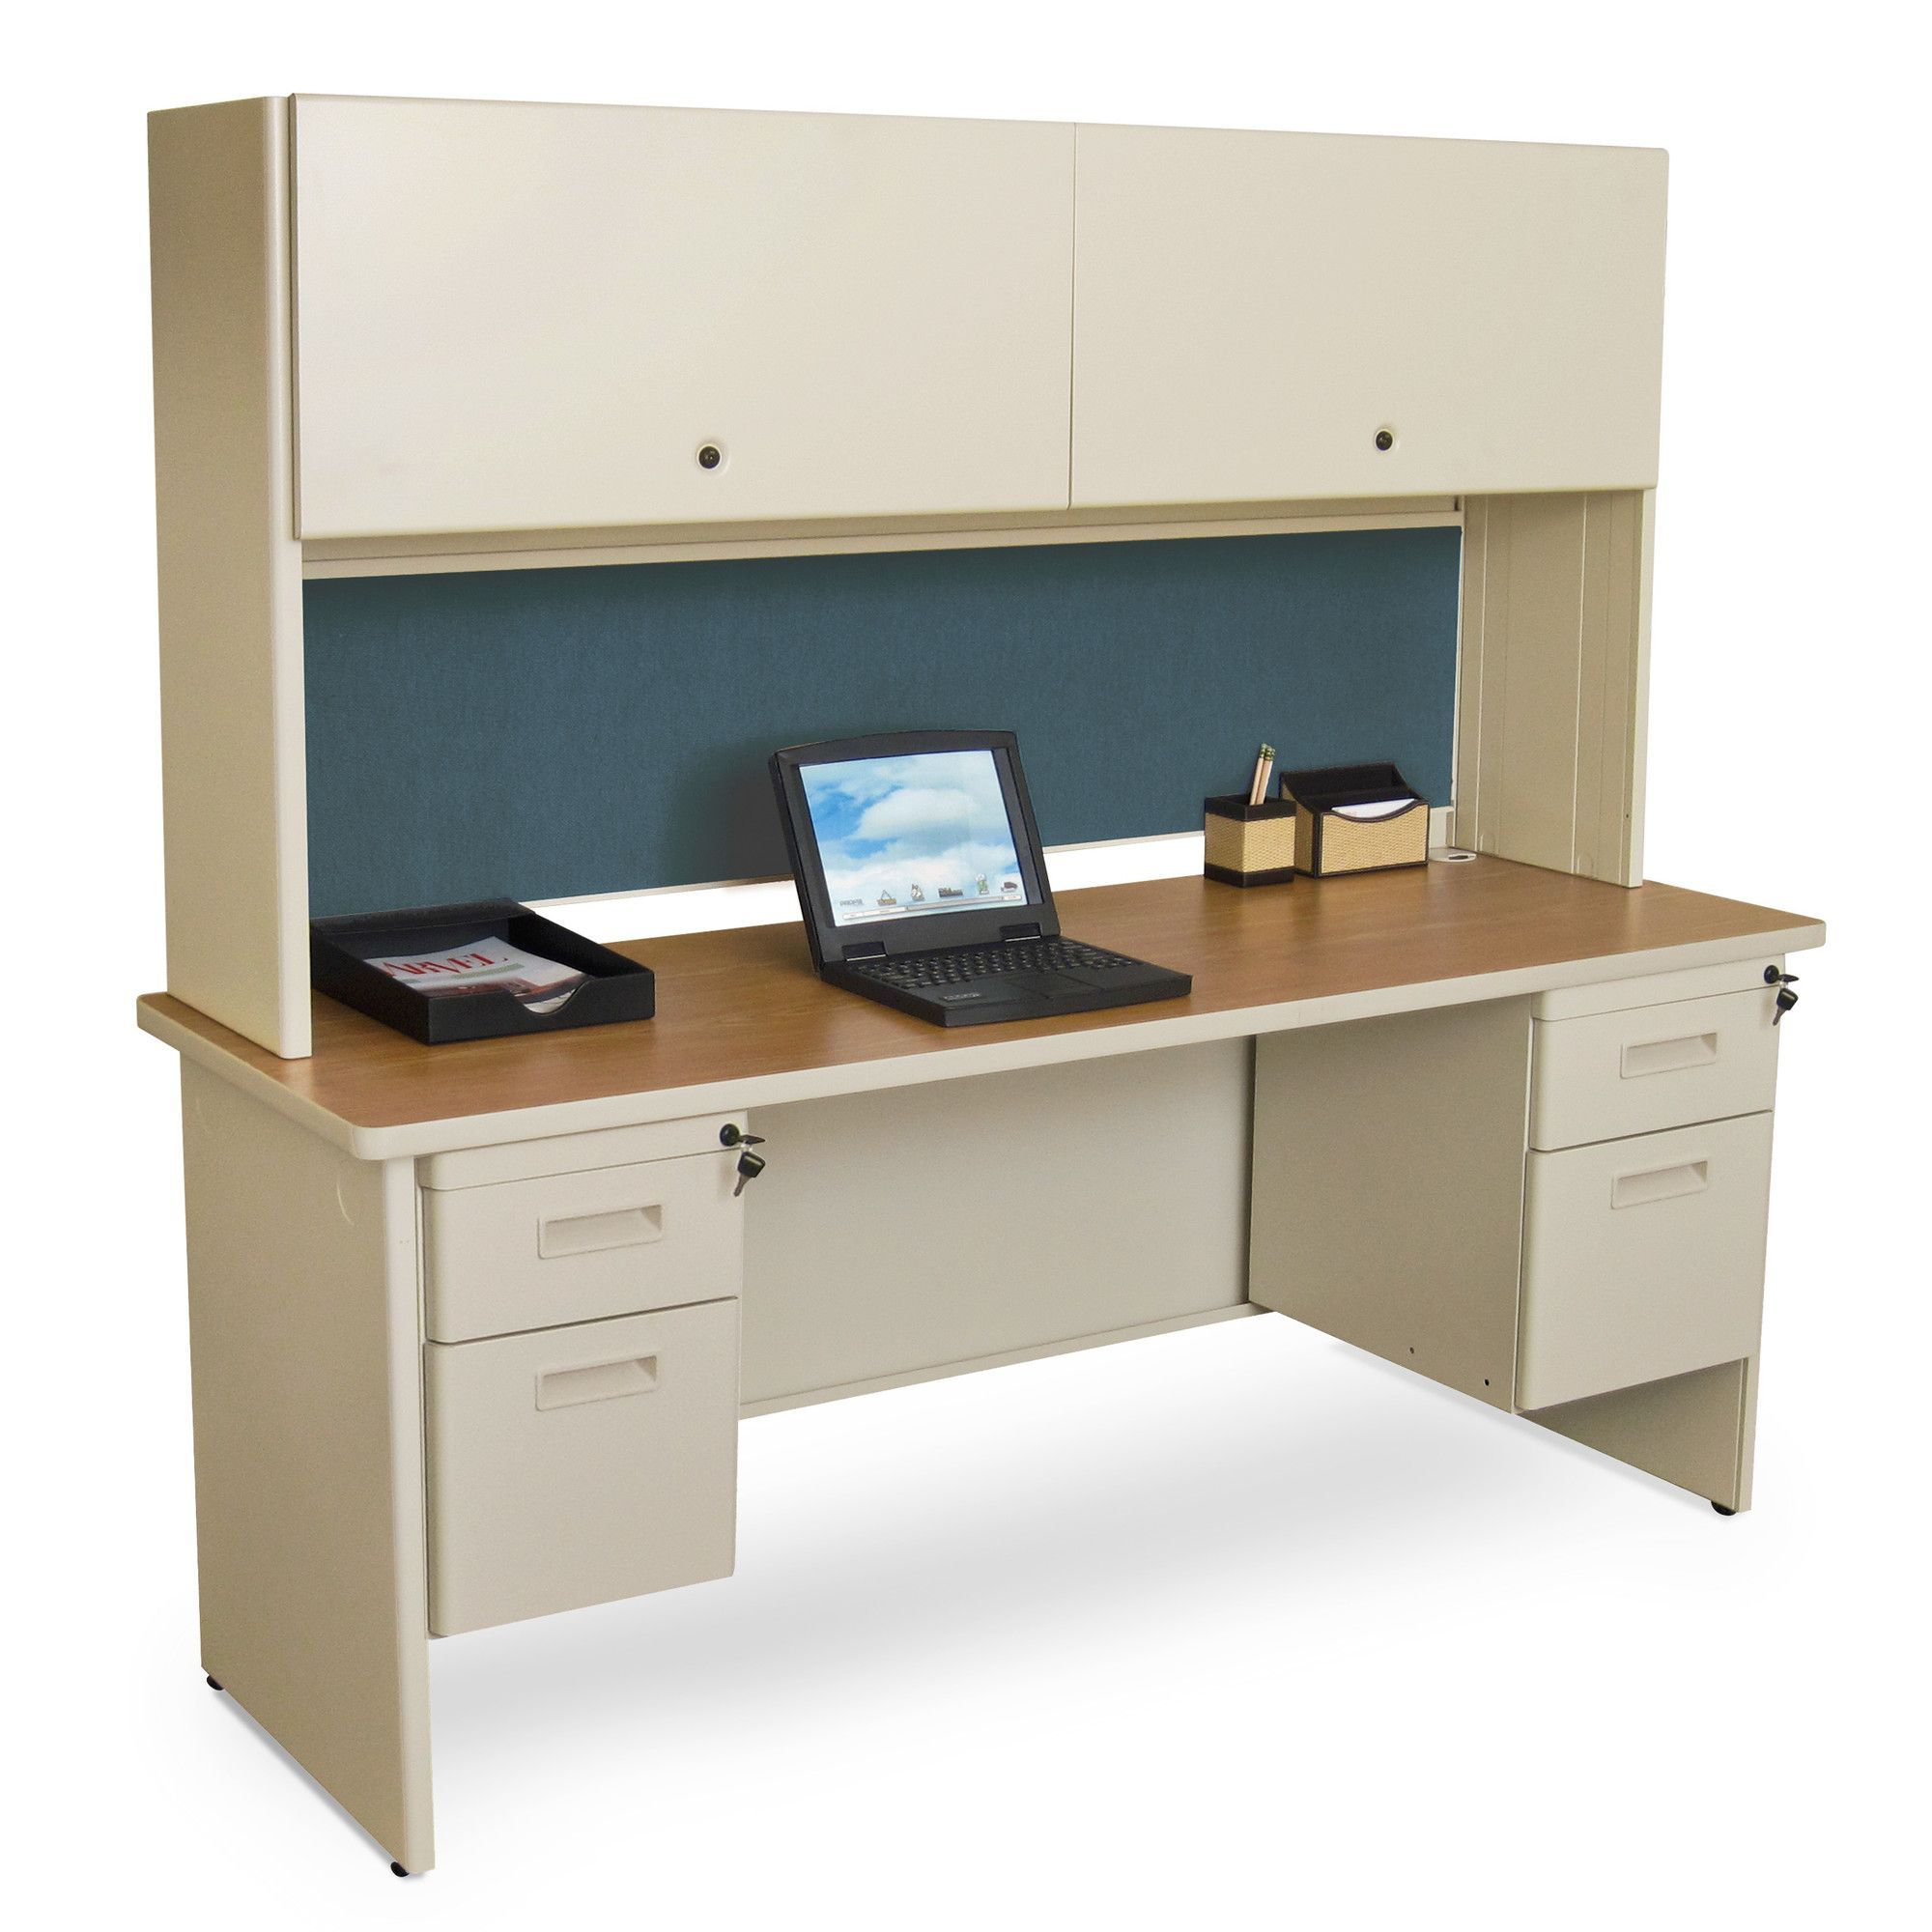 Executive office table with glass top pronto executive desk with lock  products  pinterest  desks and locks